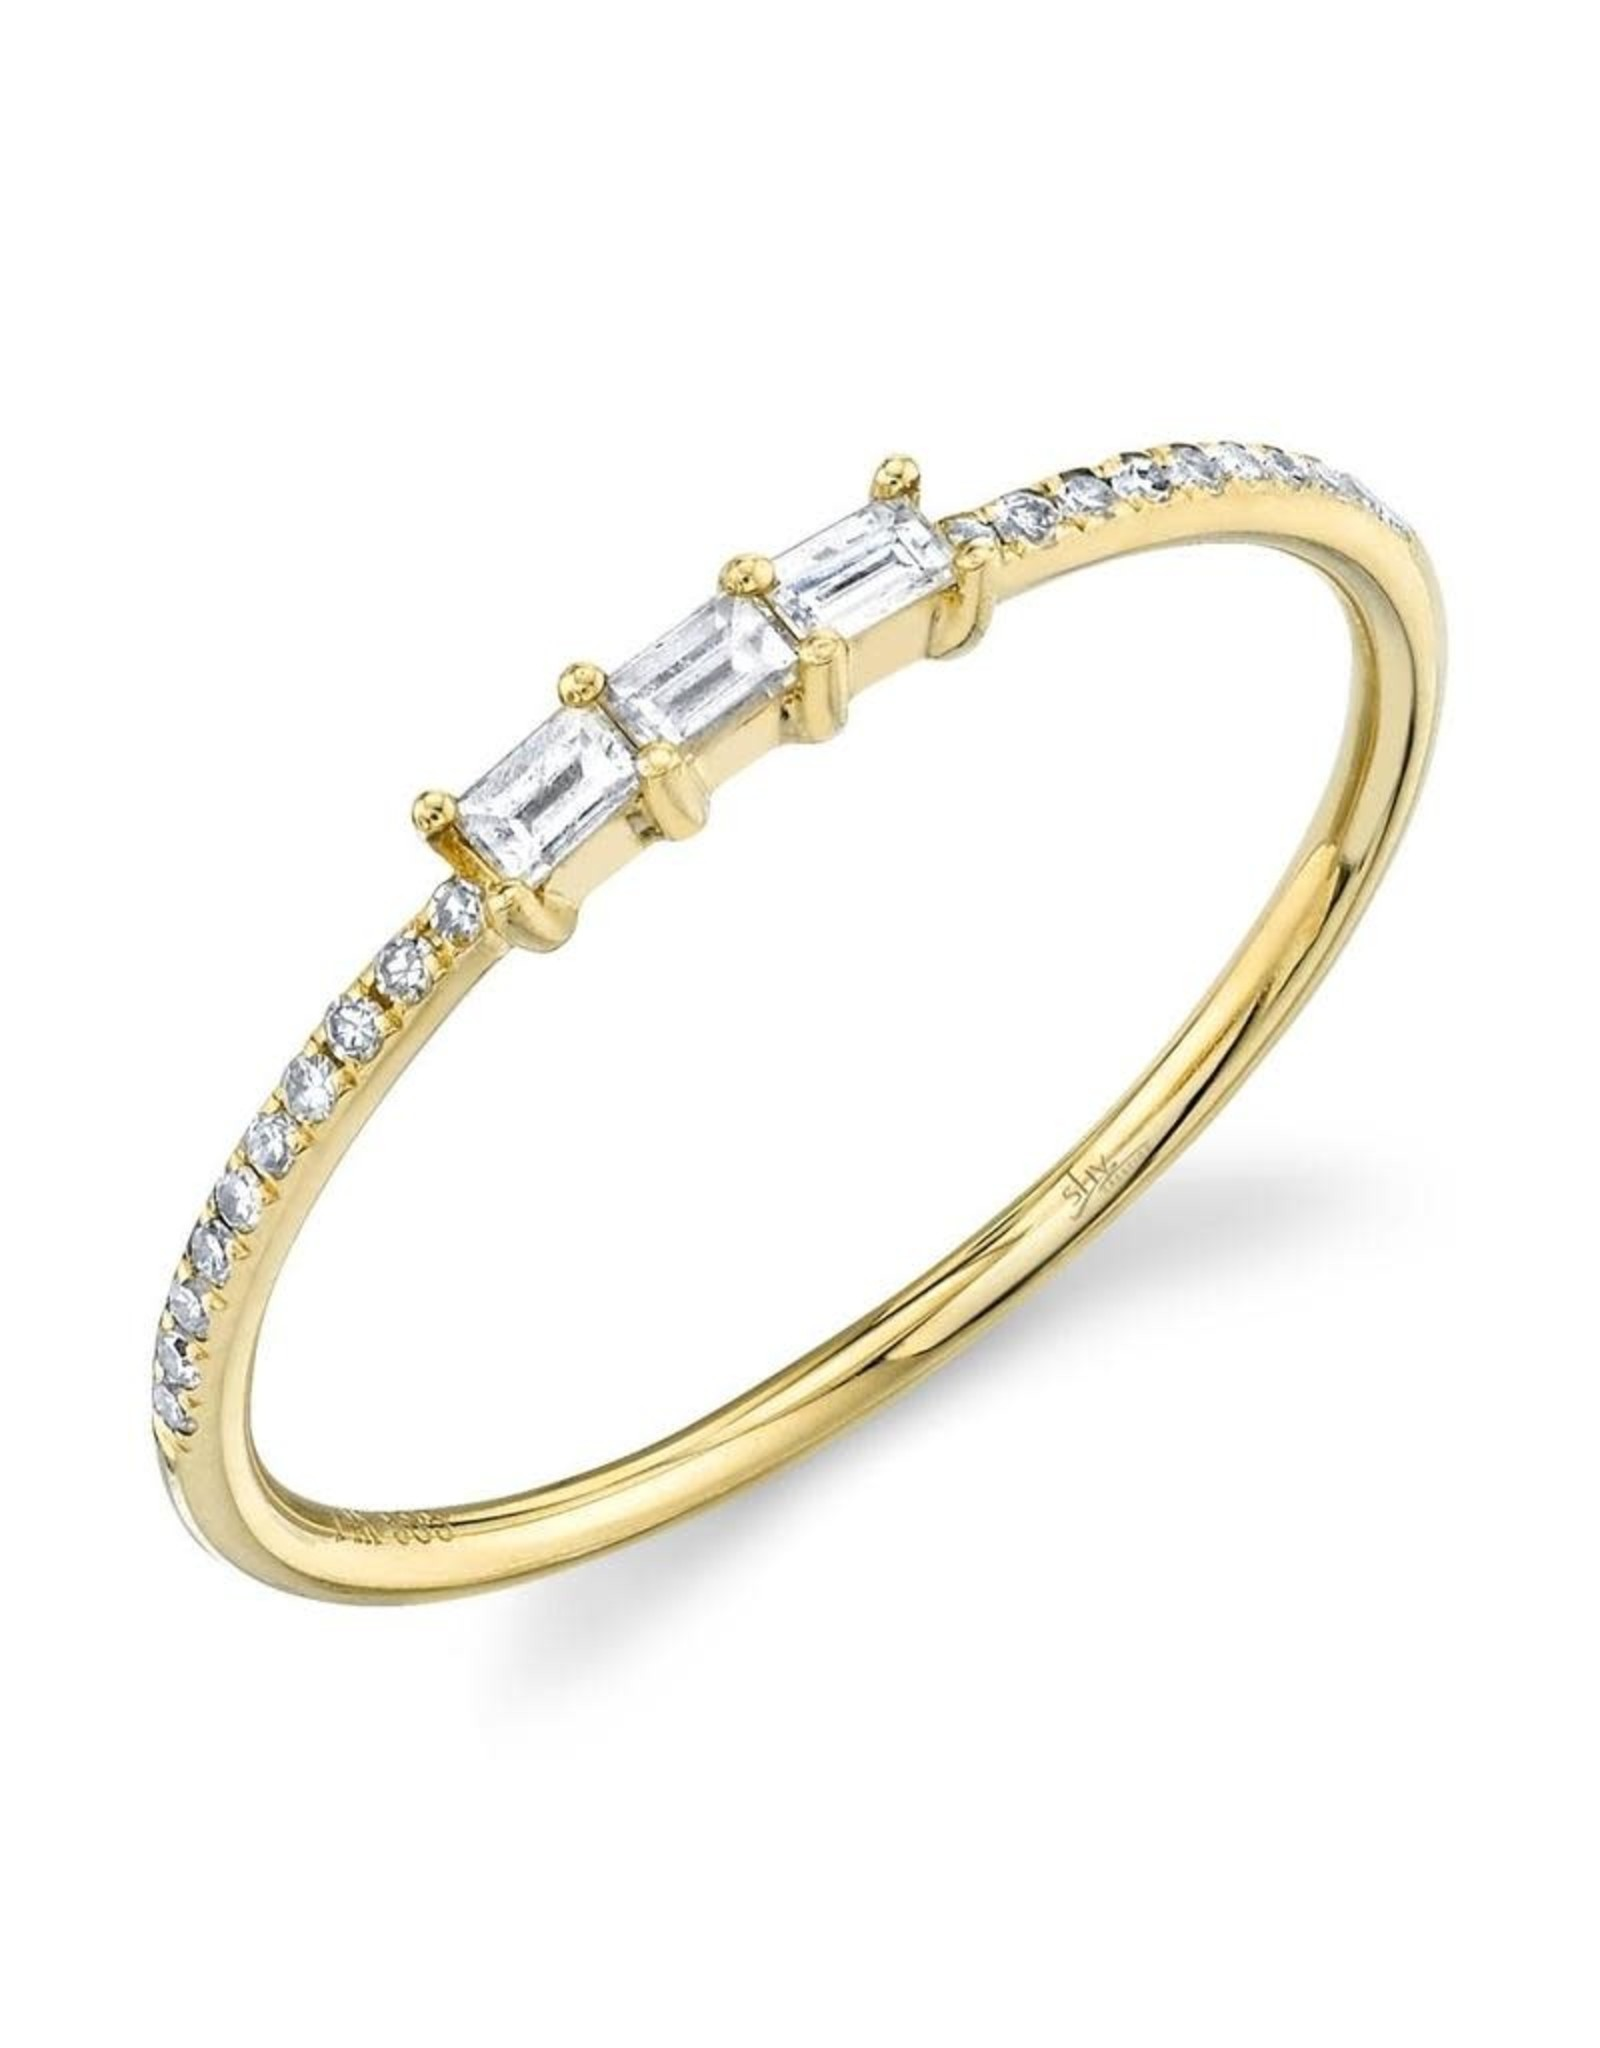 14K Yellow Gold Stackable Baguette Diamond Ring, D: 0.19ct